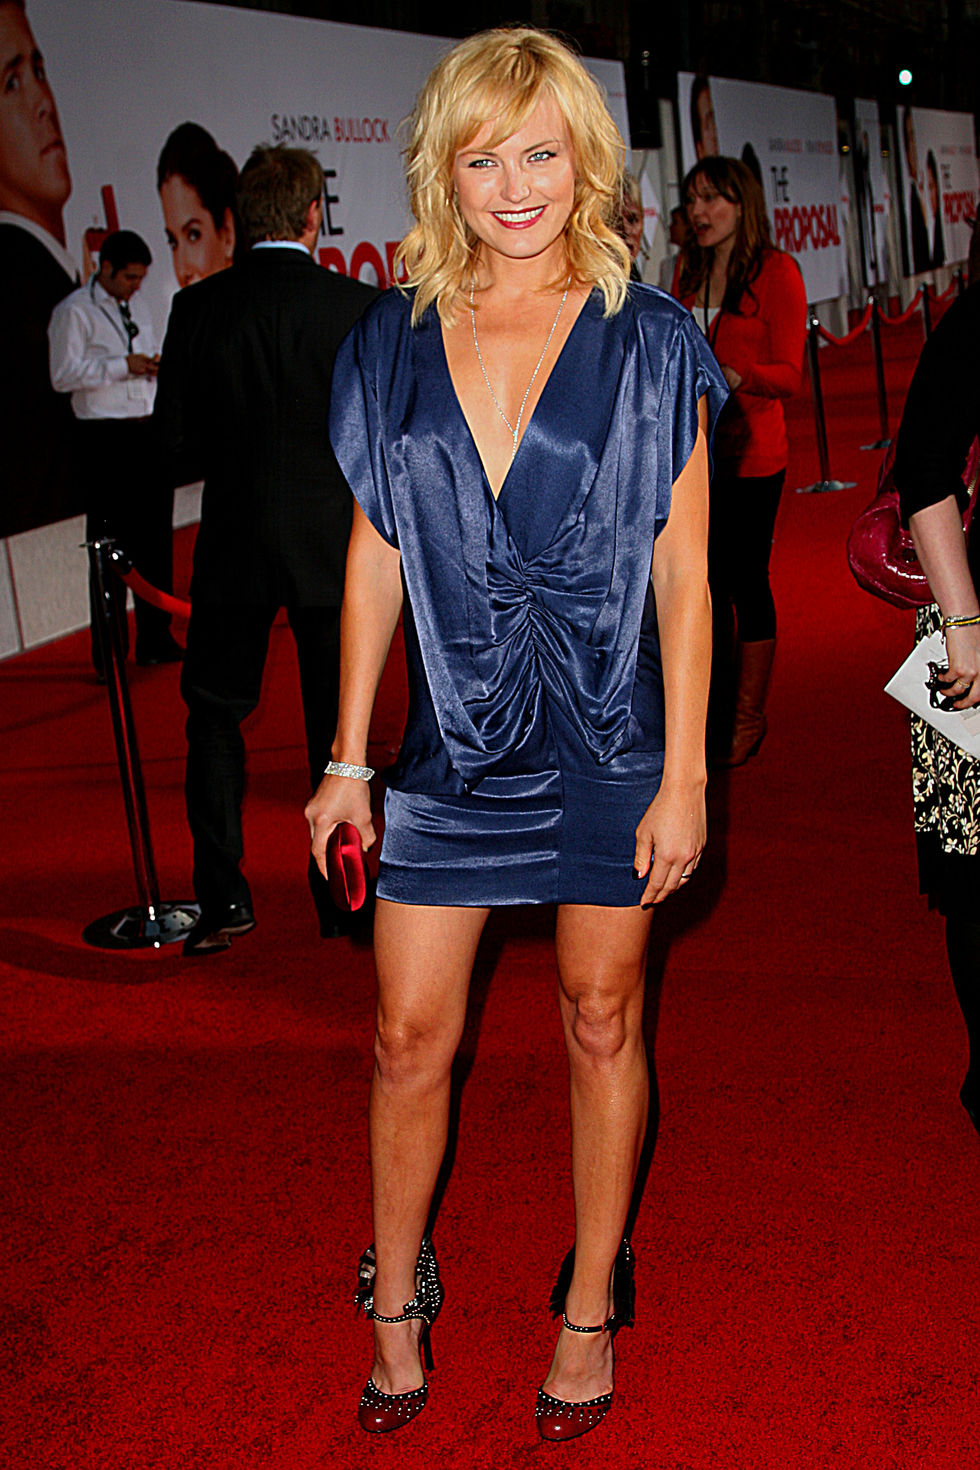 malin-akerman-the-proposal-premiere-in-hollywood-01